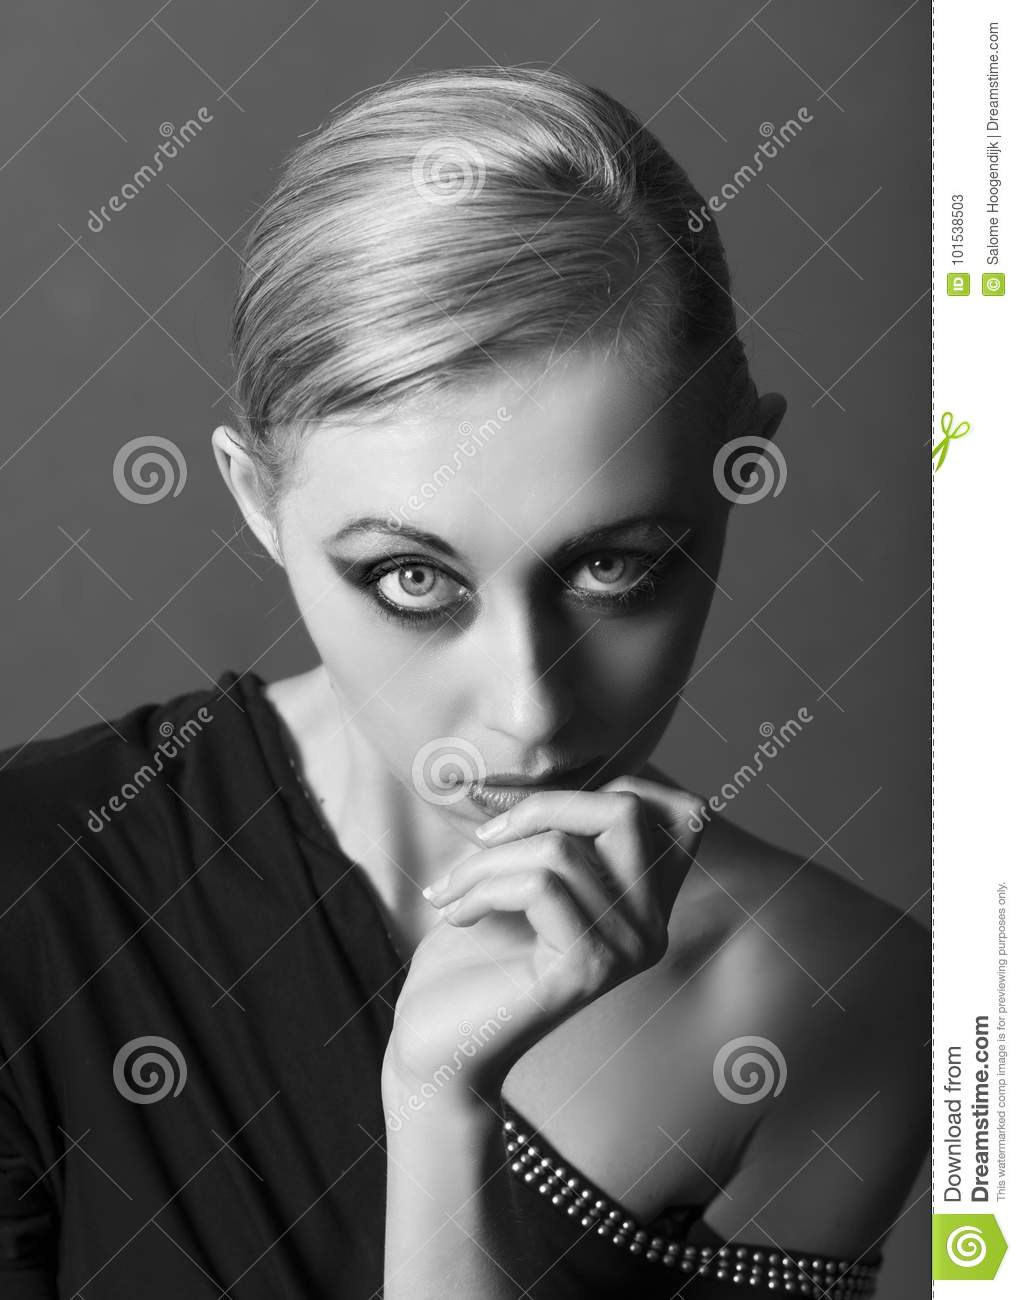 Black and white monochrome portrait of beautiful blonde woman wearing an off the shoulder black top and dramatic, edgy makeup, posing with her hand to her ...